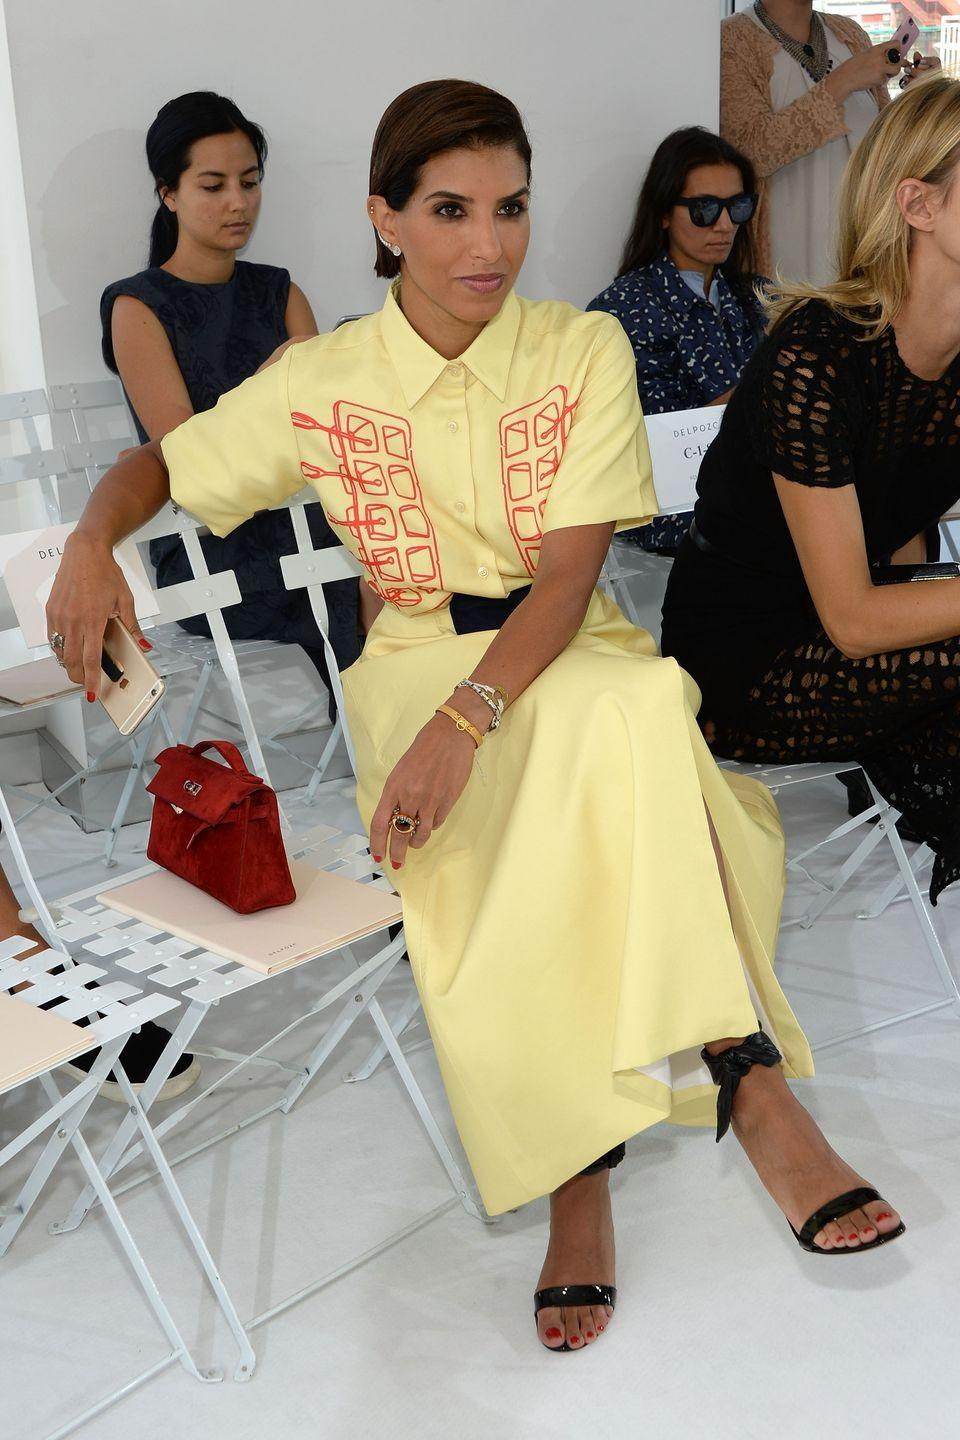 <p>She's a favorite of street style photographers for her daring looks. Here, she is pictured ere at the Delpozo Spring 2016 show in a striking yellow shirtdress. </p>